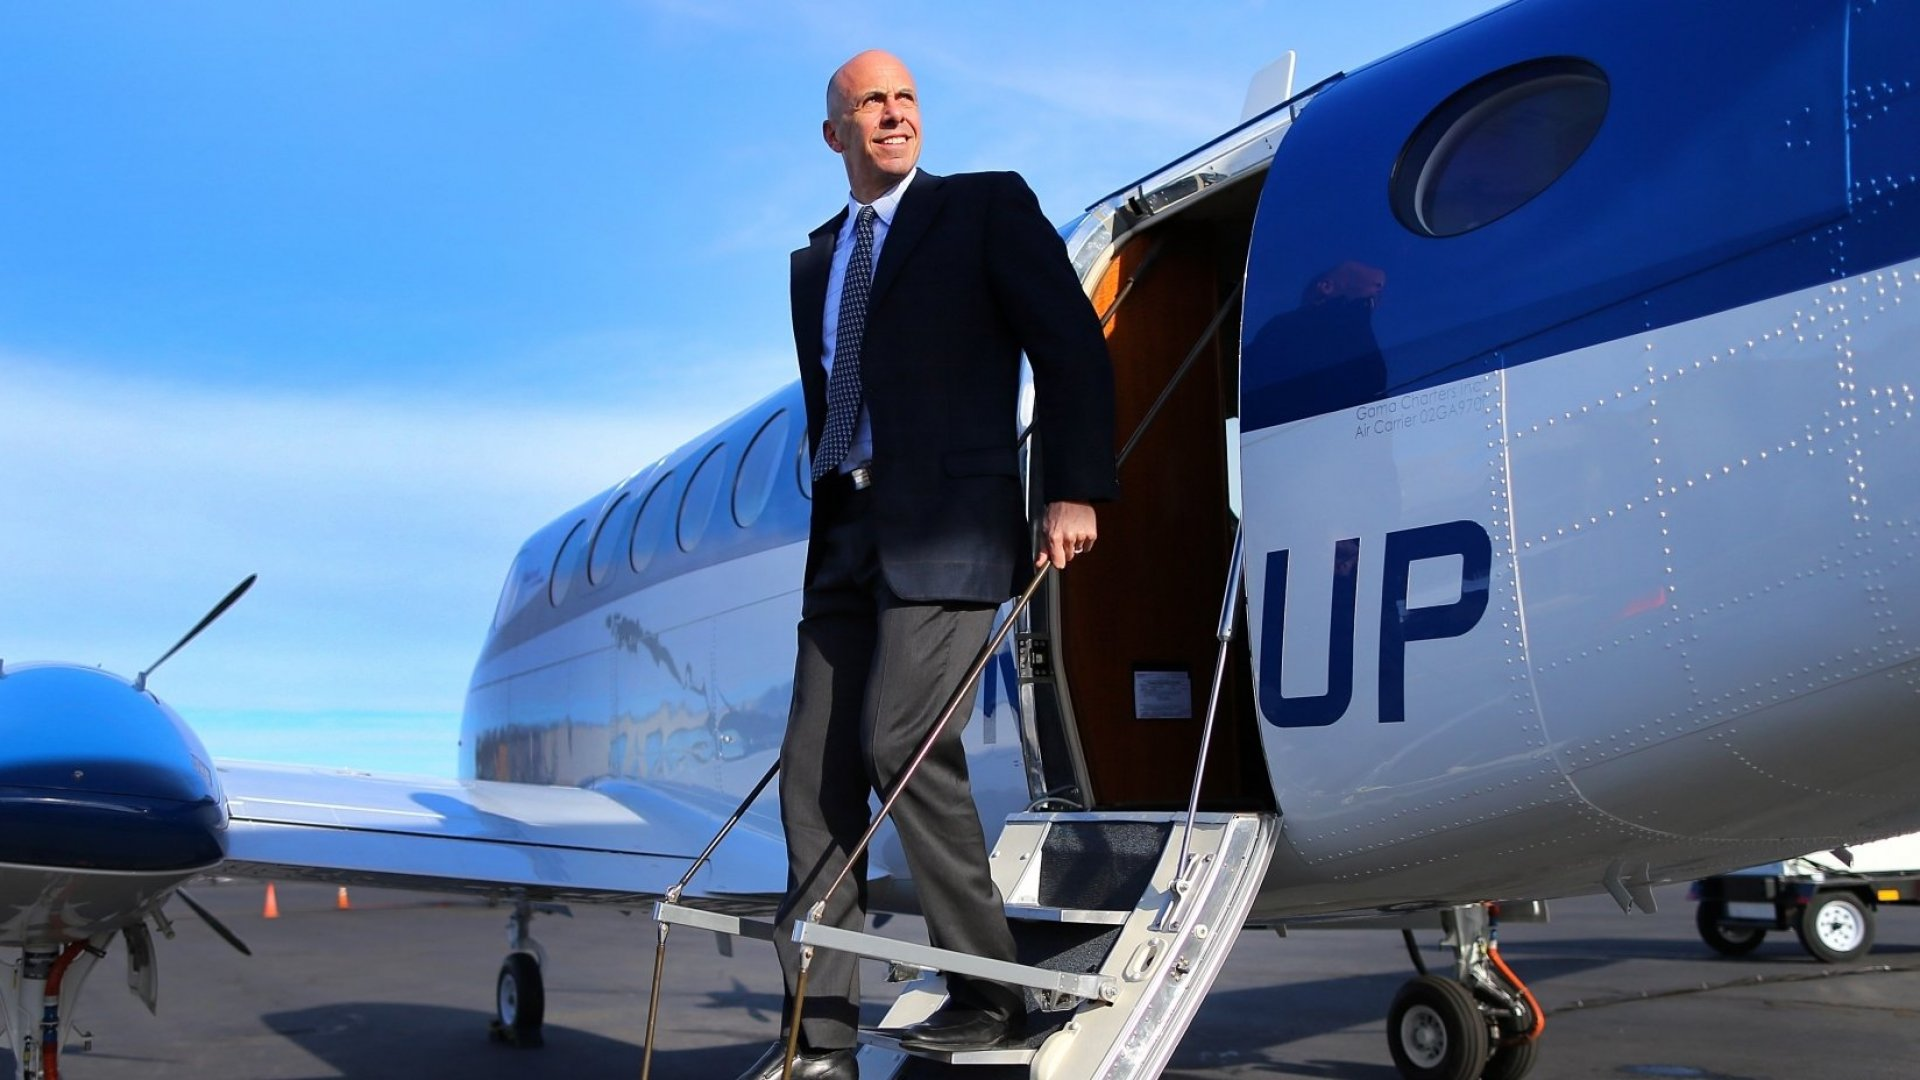 Wheels Up CEO: Make Private Aviation as Easy as Uber